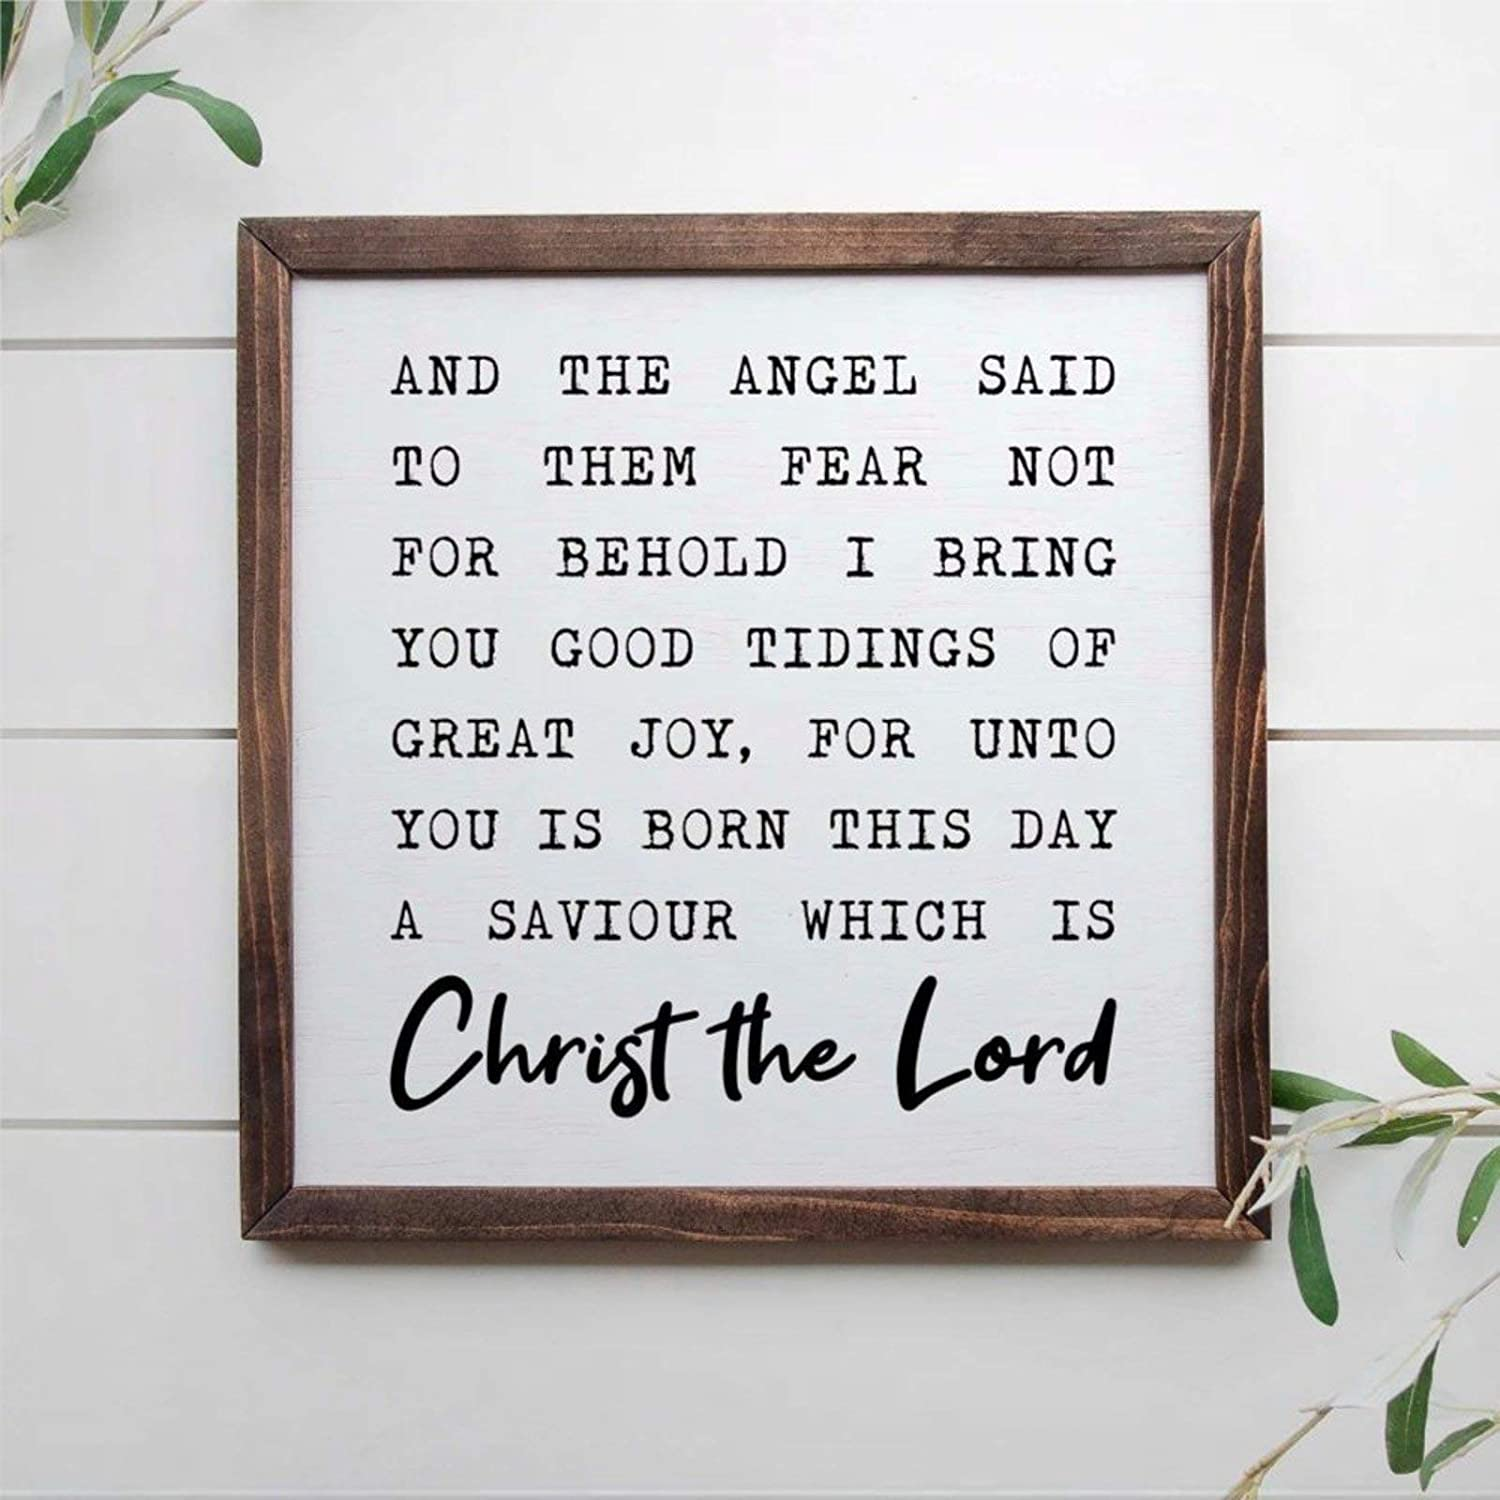 DONL9BAUER and The Angel Said to Them Behold I Bring You Good Tidings of Great Joy, 12x12 Framed Wooden Sign, Christmas Sign Wall Hanging Farmhouse Home Decor Wall Art